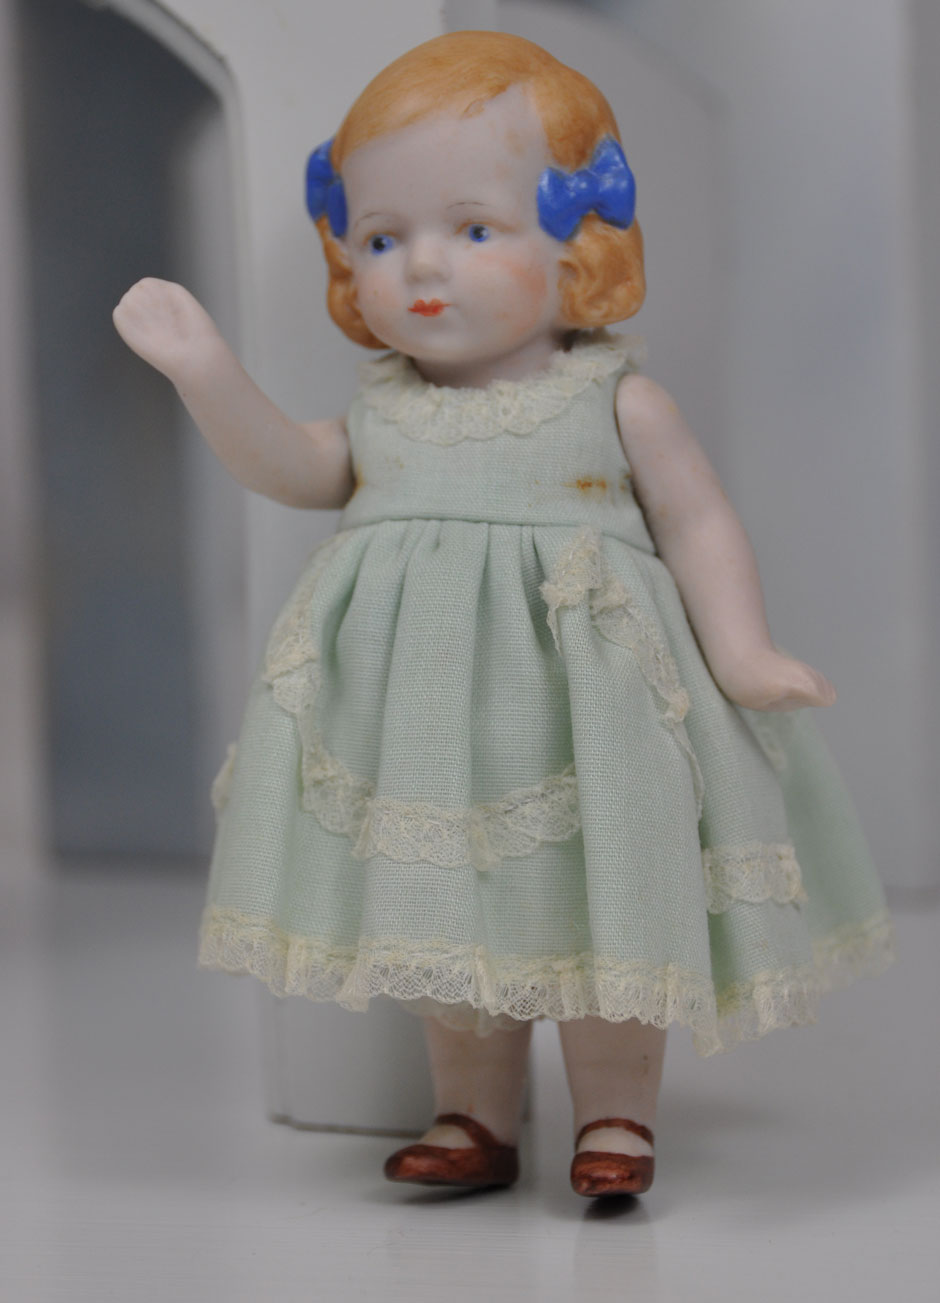 Antique Hertwig Limbach Bisque Doll 1